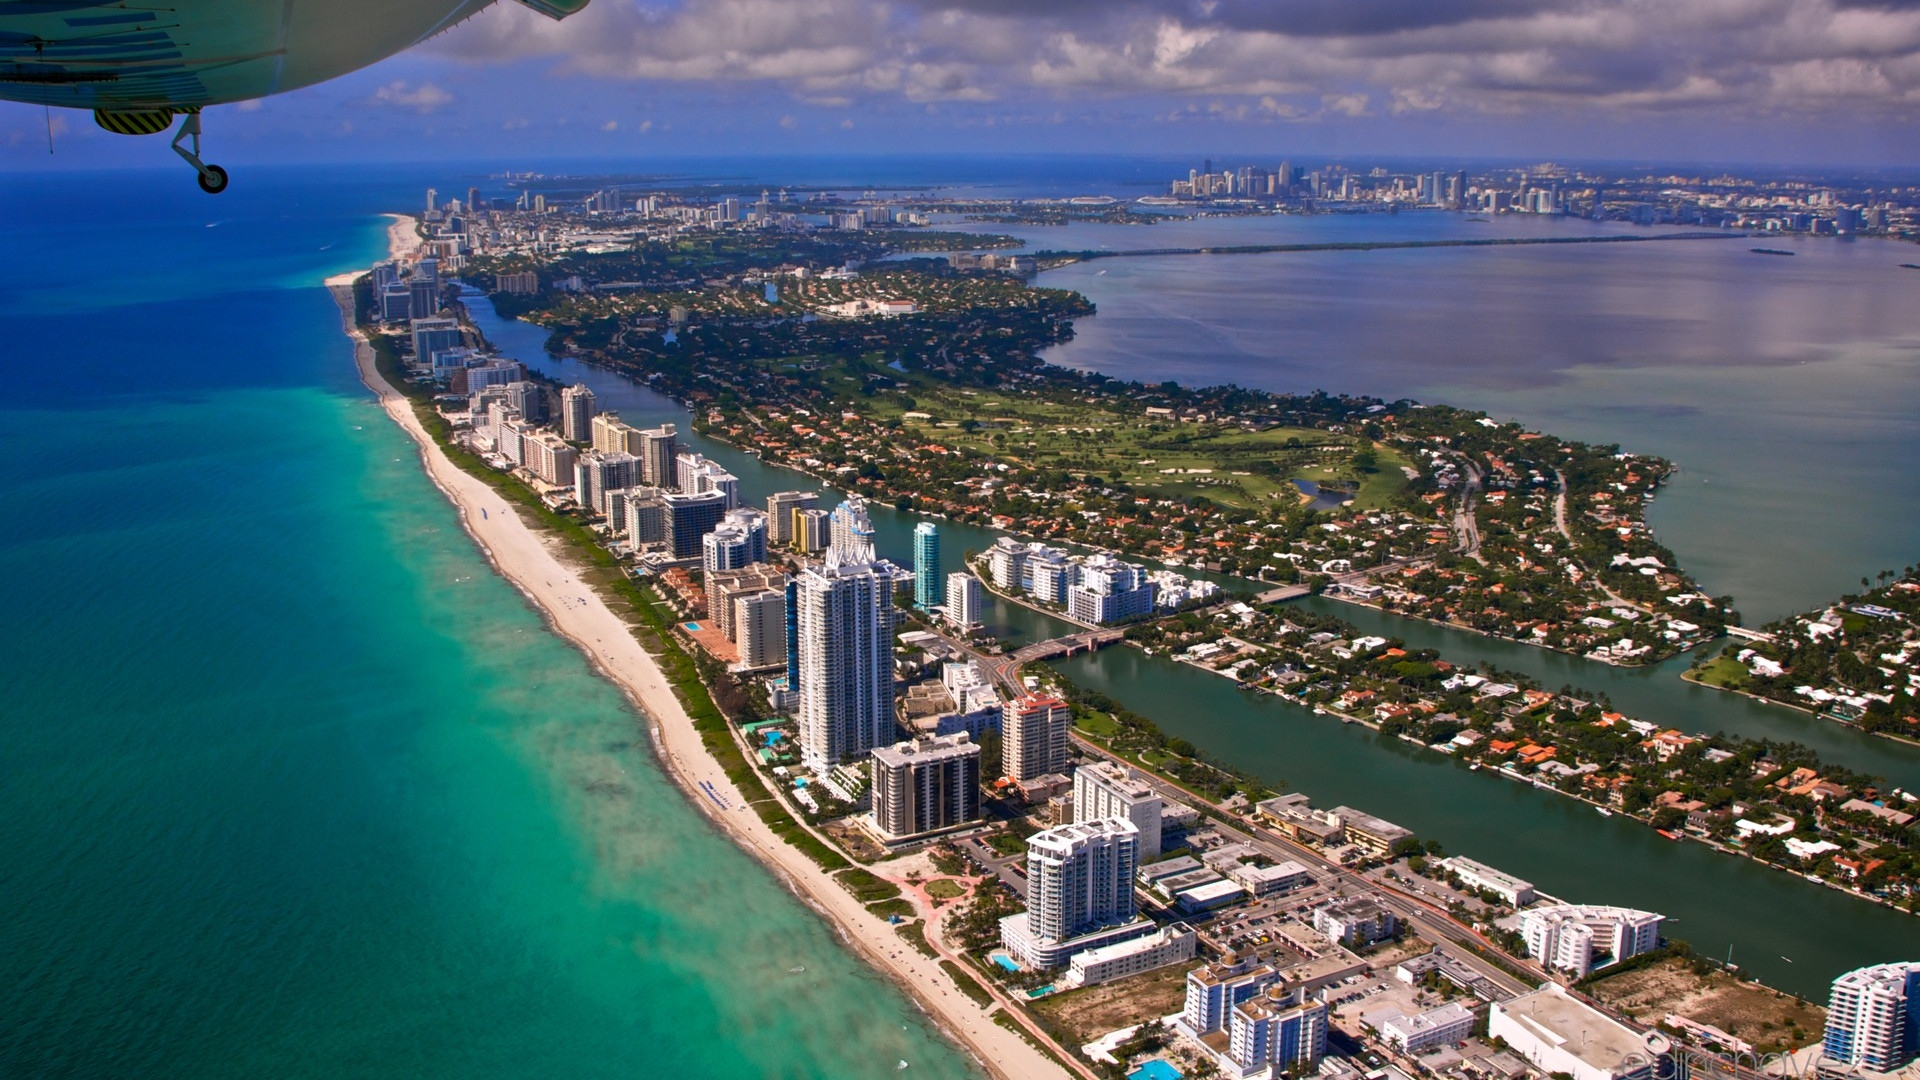 Download Wallpaper 1920x1080 Miami City Flight View From The